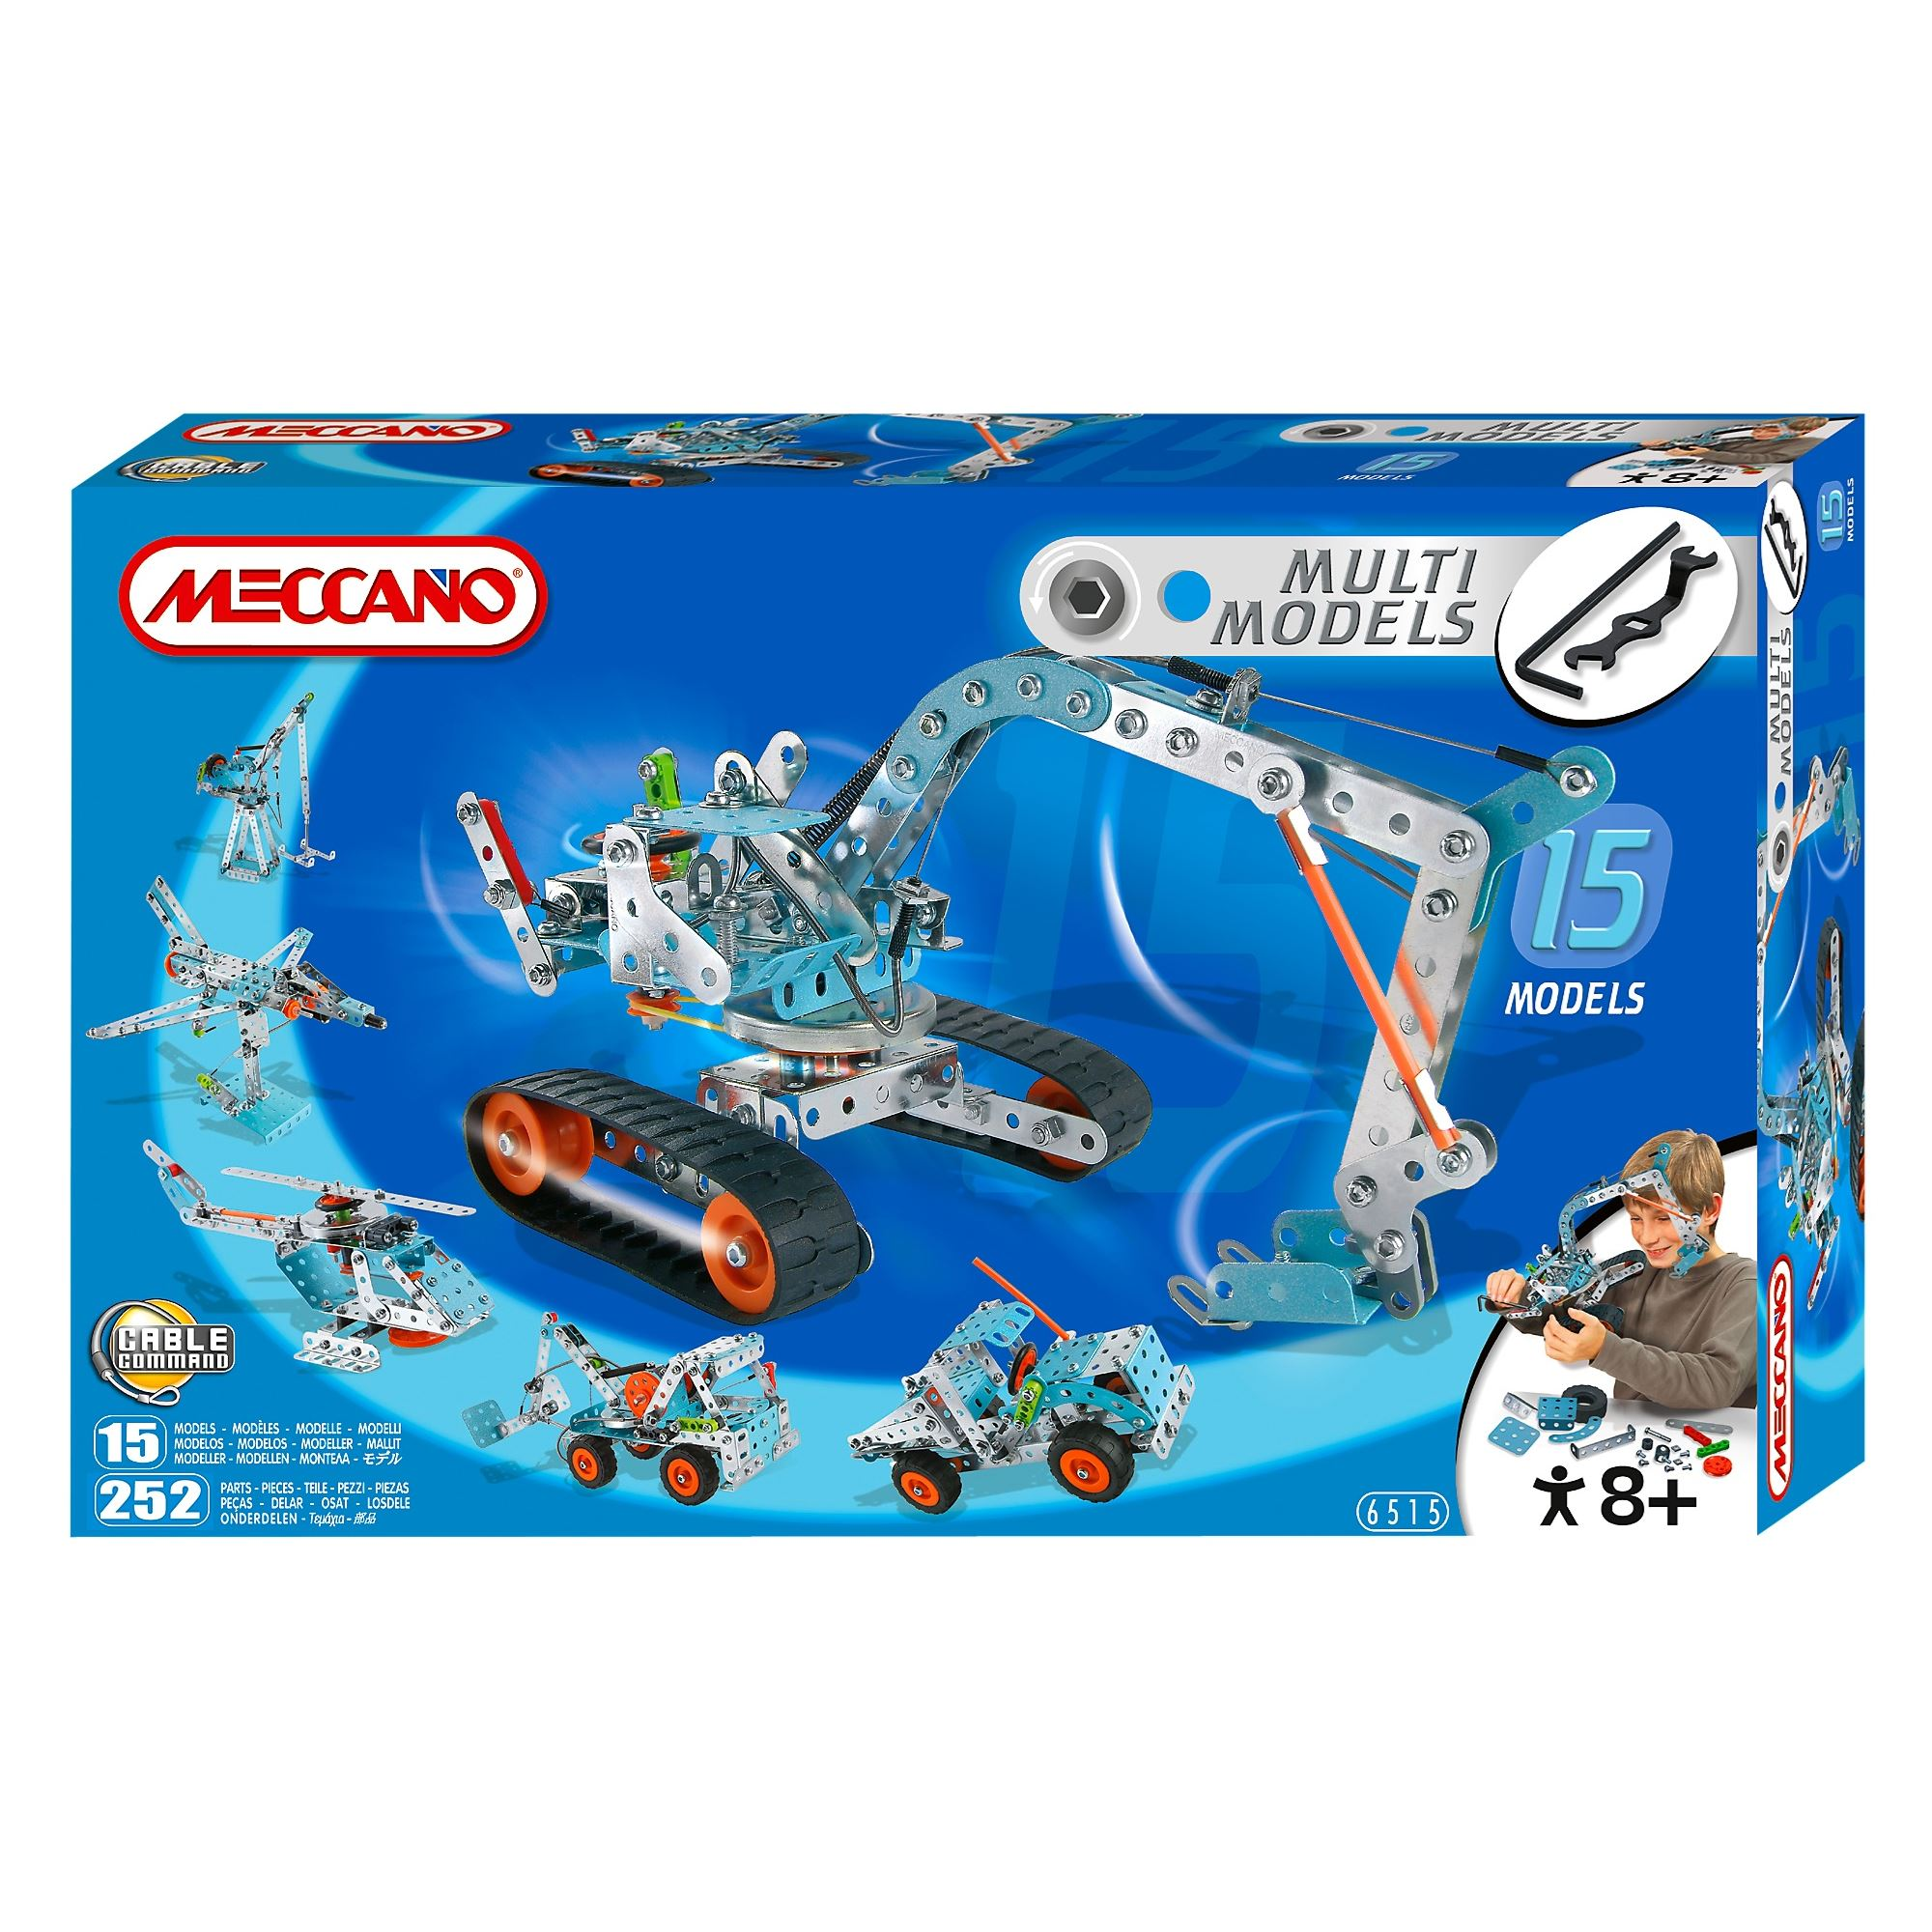 Meccano 15 Multimodels